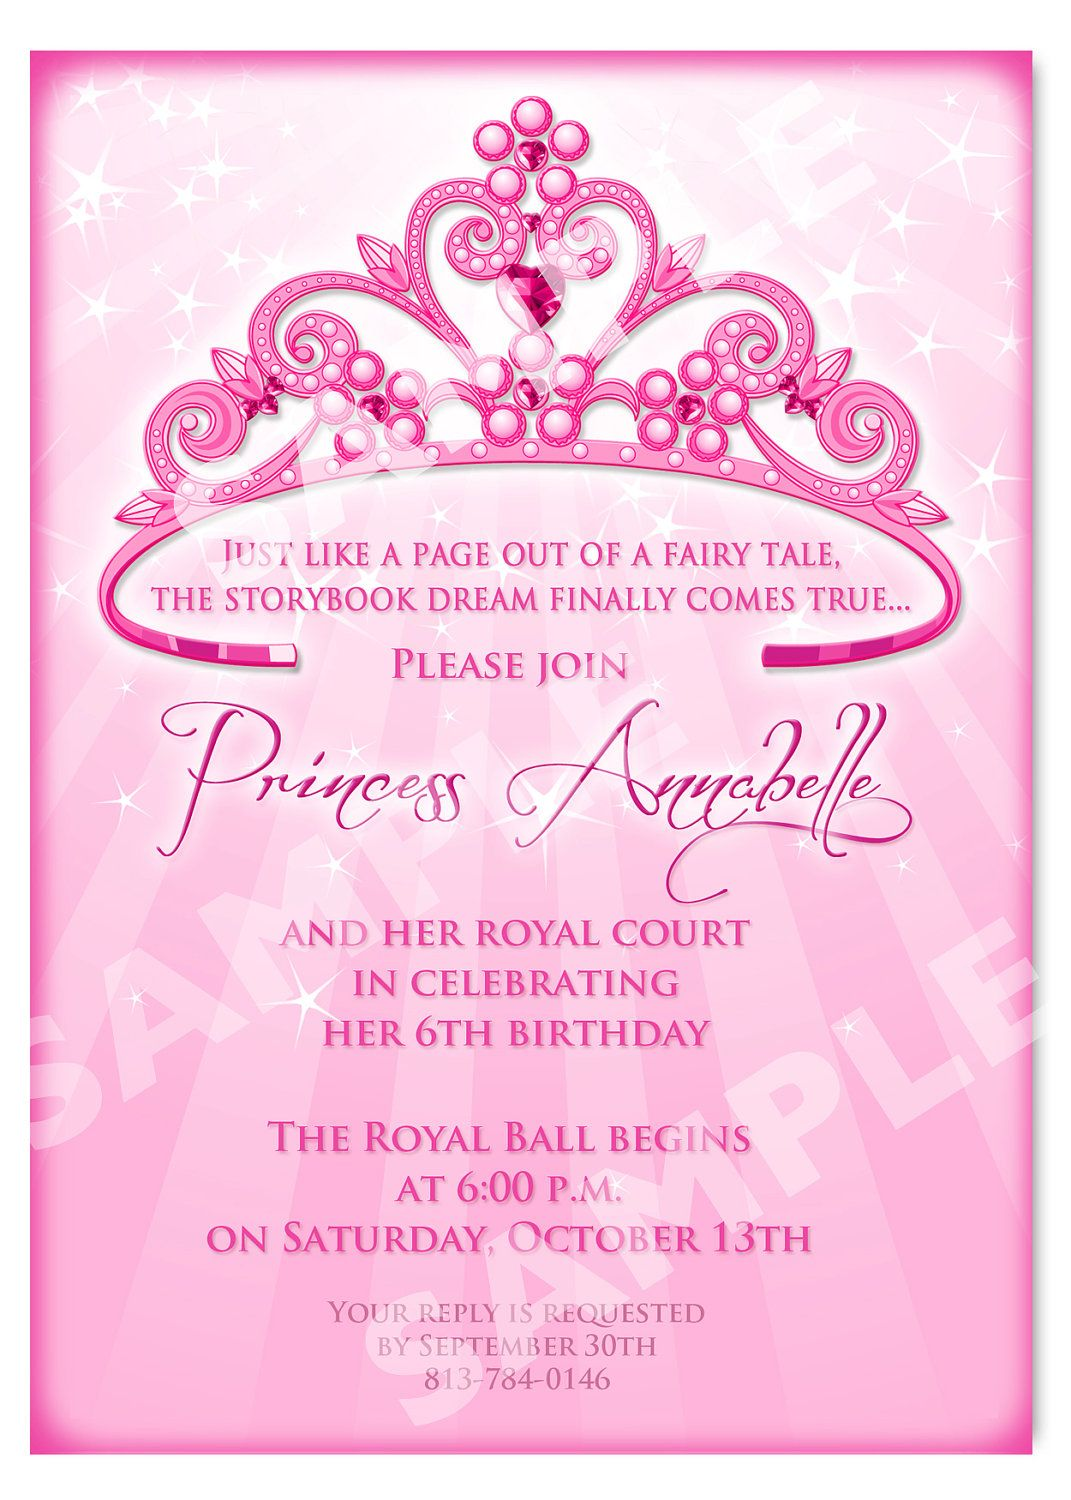 Printable princess invitation cards birthday party ideas printable princess invitation cards stopboris Images